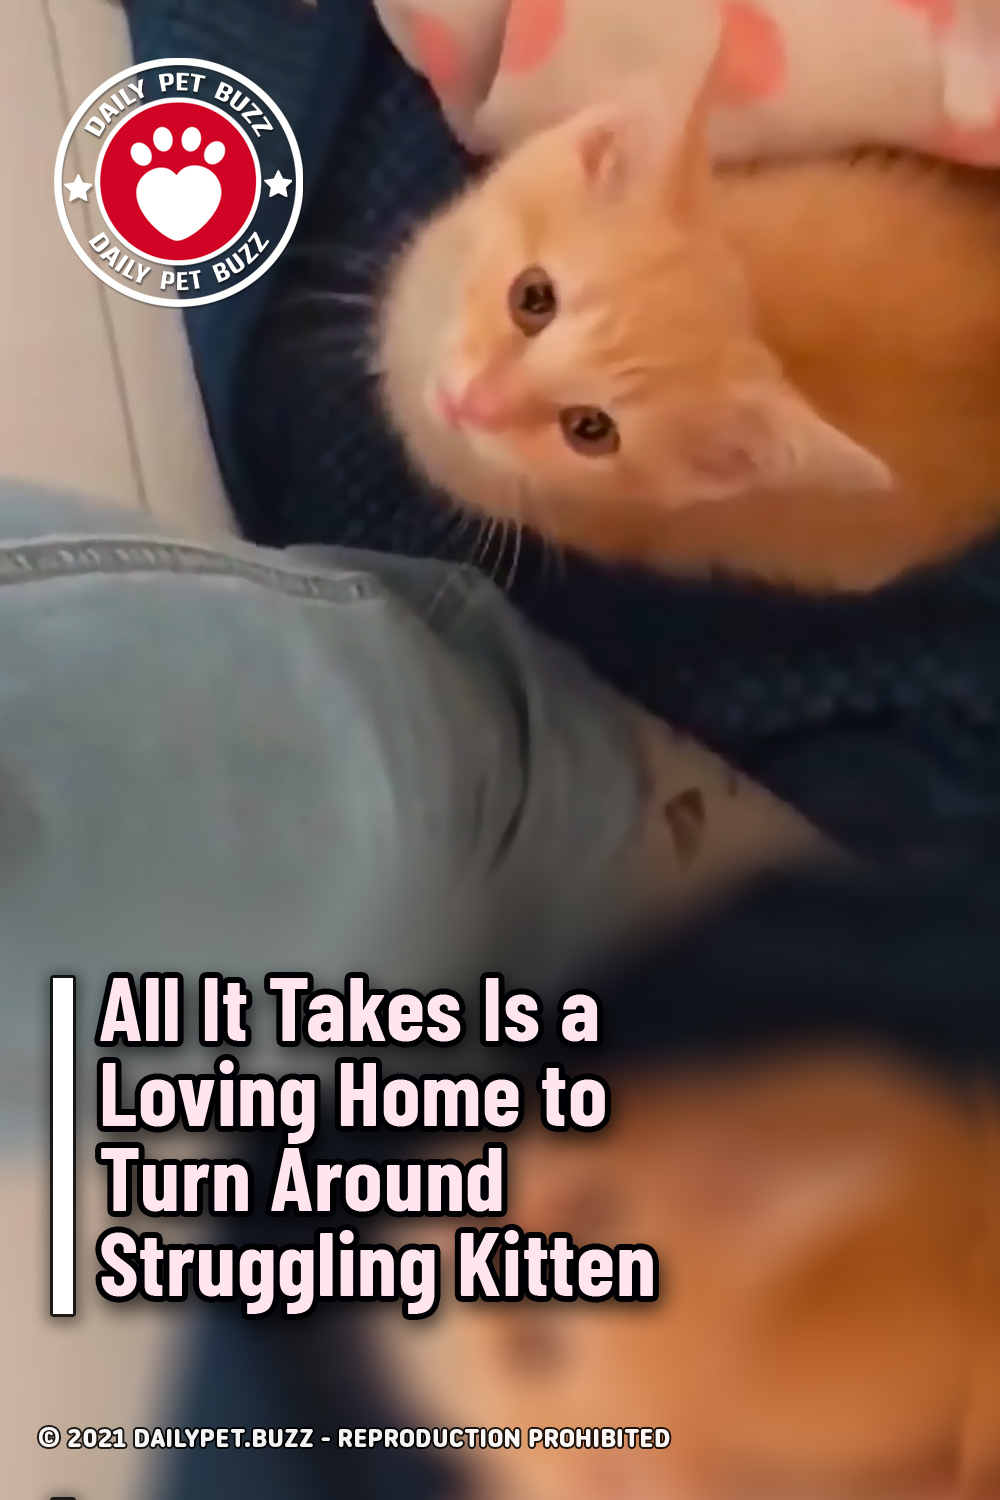 All It Takes Is a Loving Home to Turn Around Struggling Kitten